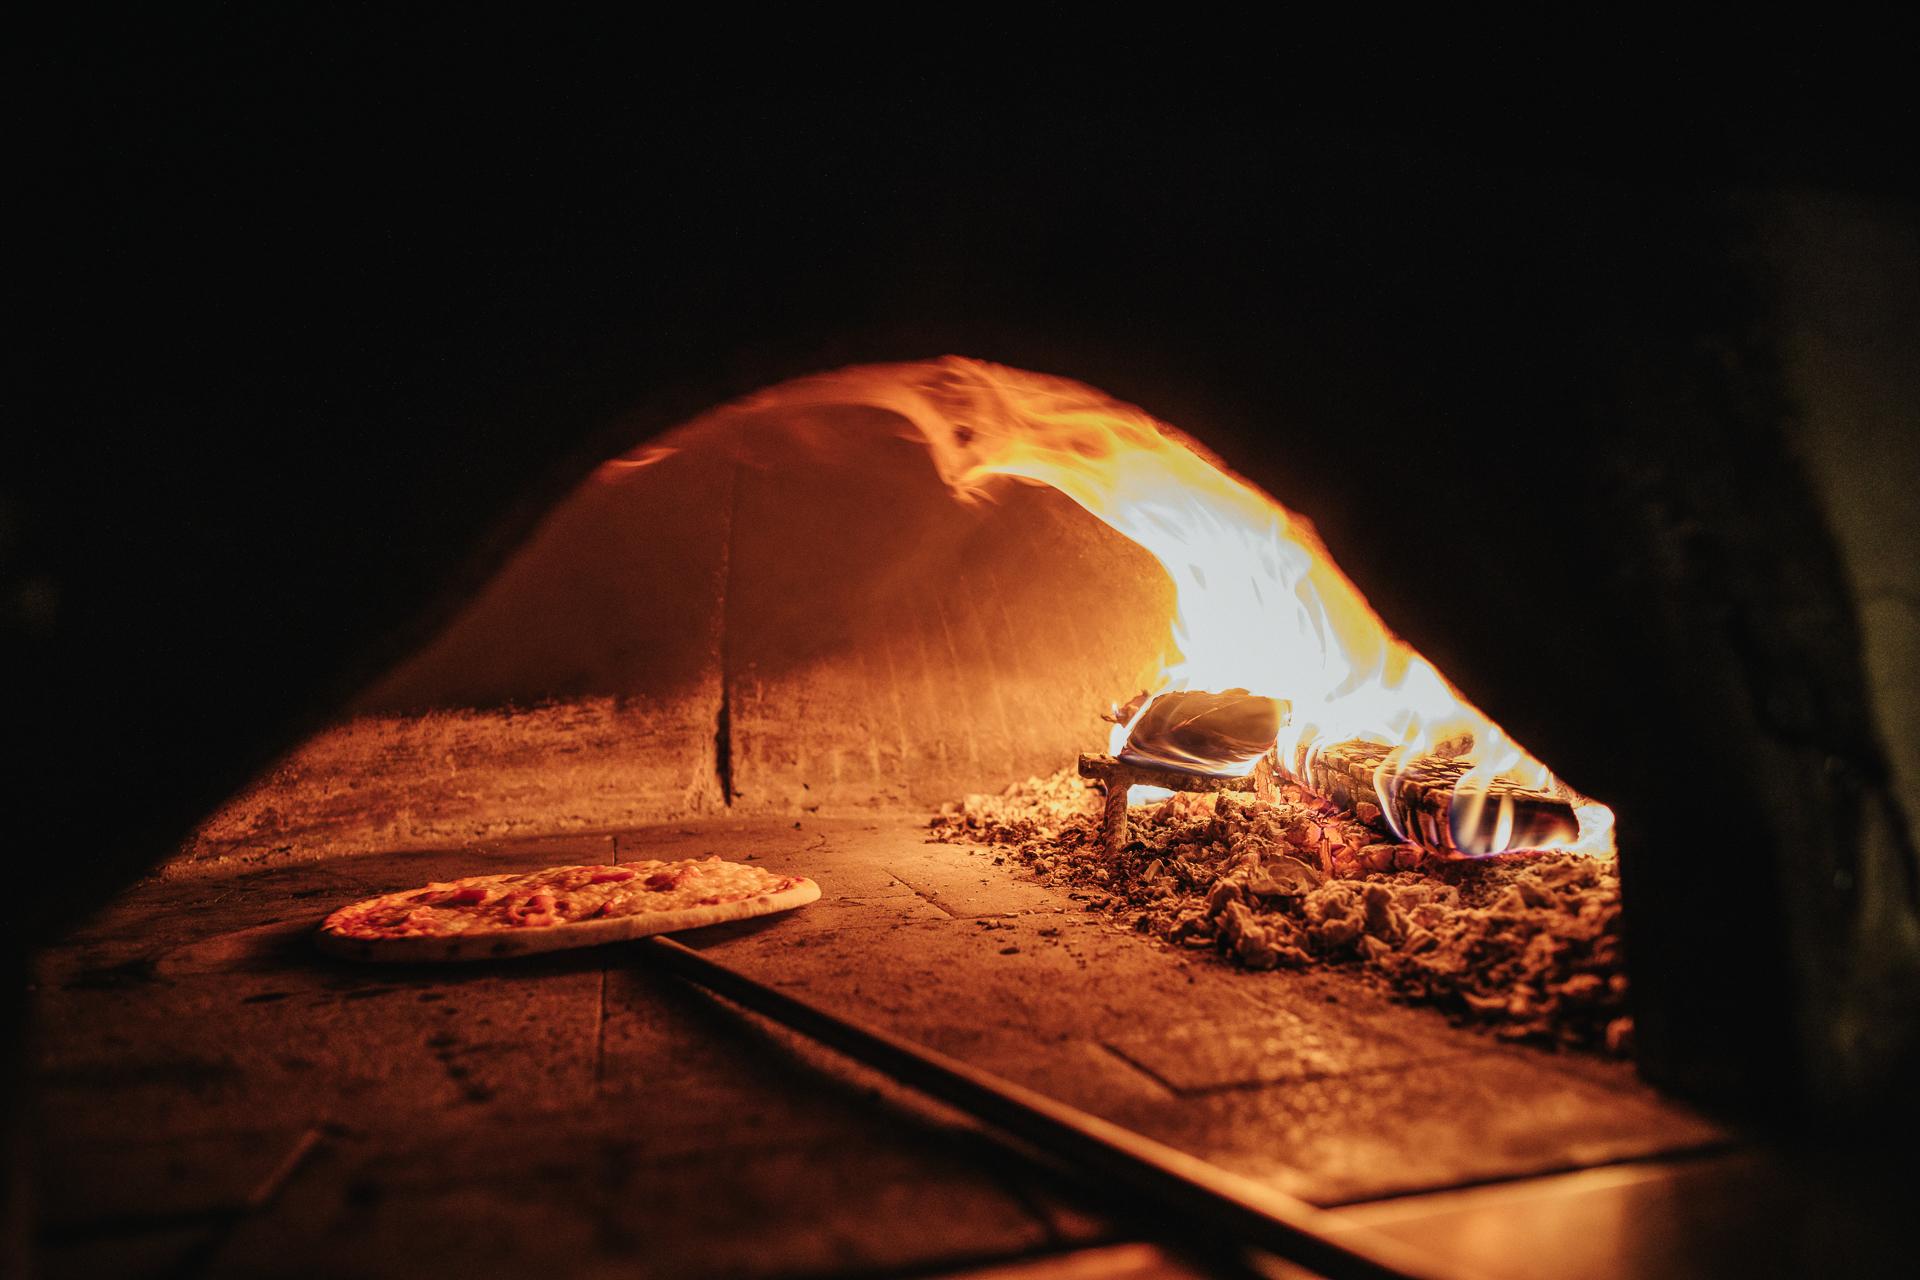 Pizzeria with wood oven